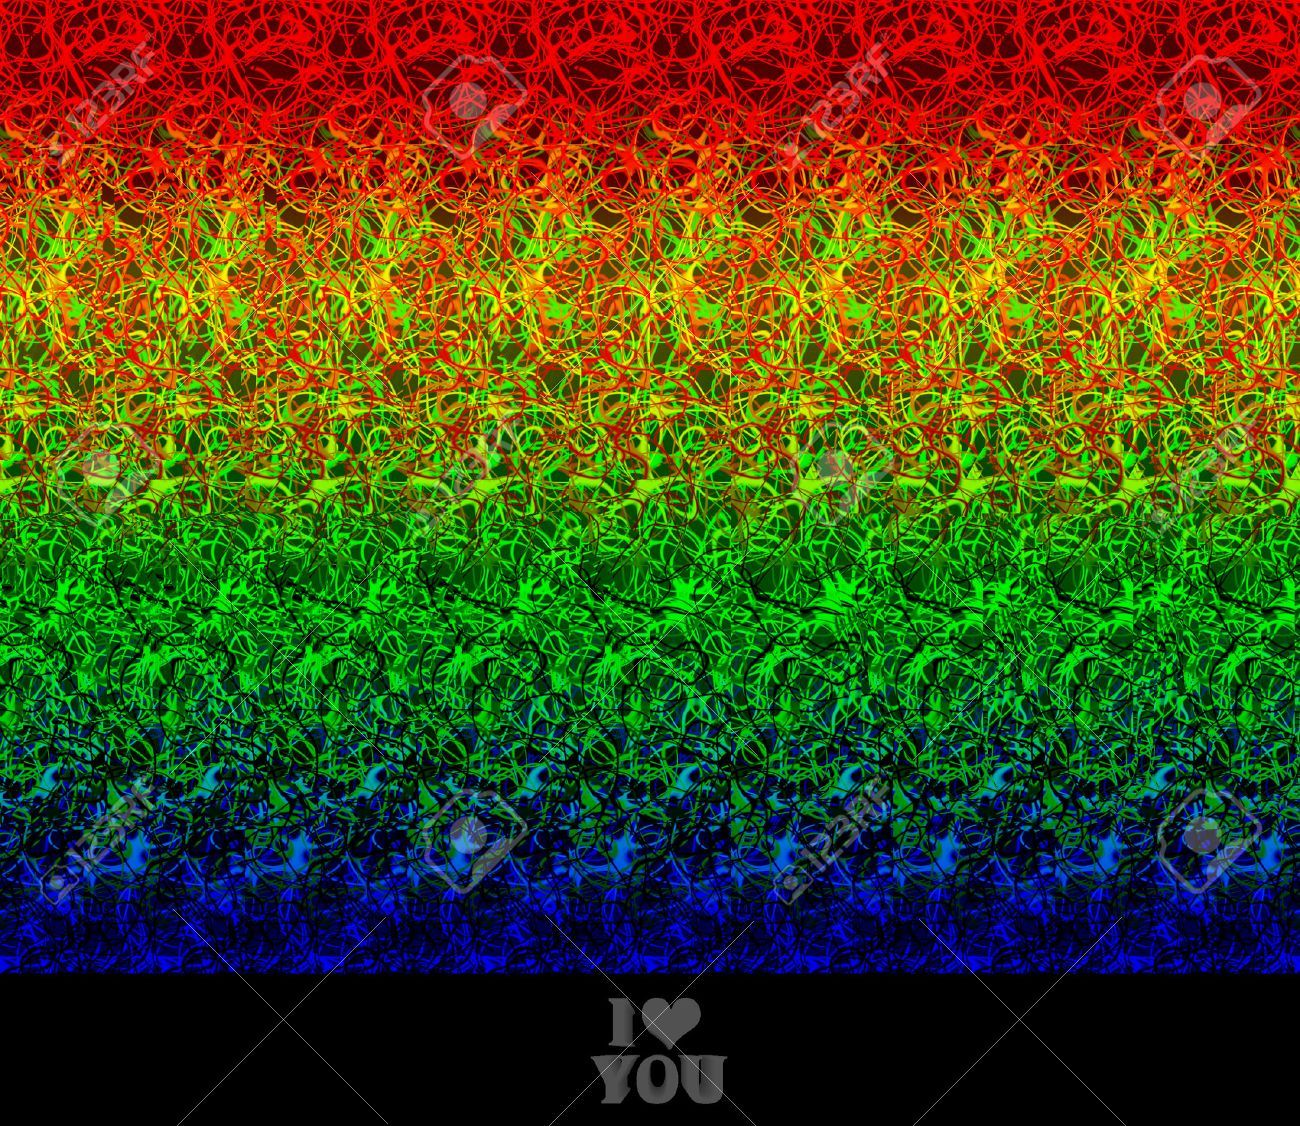 Valentine Greeting I Love You Stereogram Autostereogram Creates The Illusion Of A 3d Image Aff Love Stereogr Magic Eye Pictures Magic Eyes Illusions